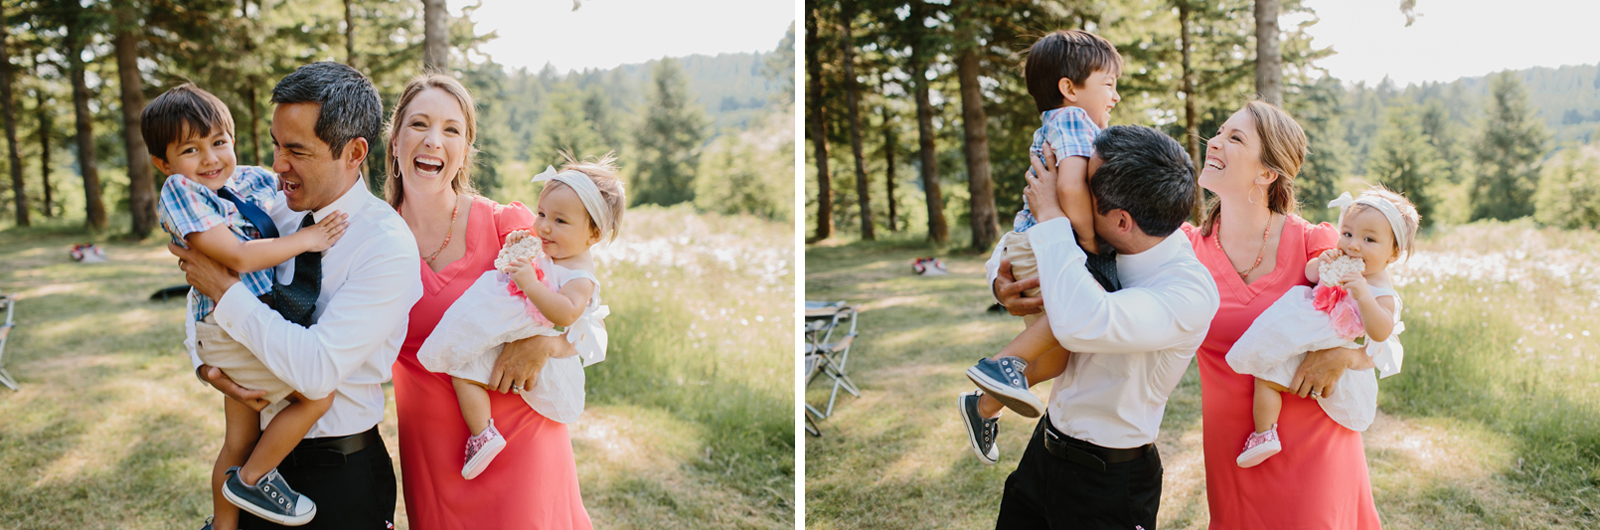 Silver Falls State Park Wedding by Anna Jaye Photography 066